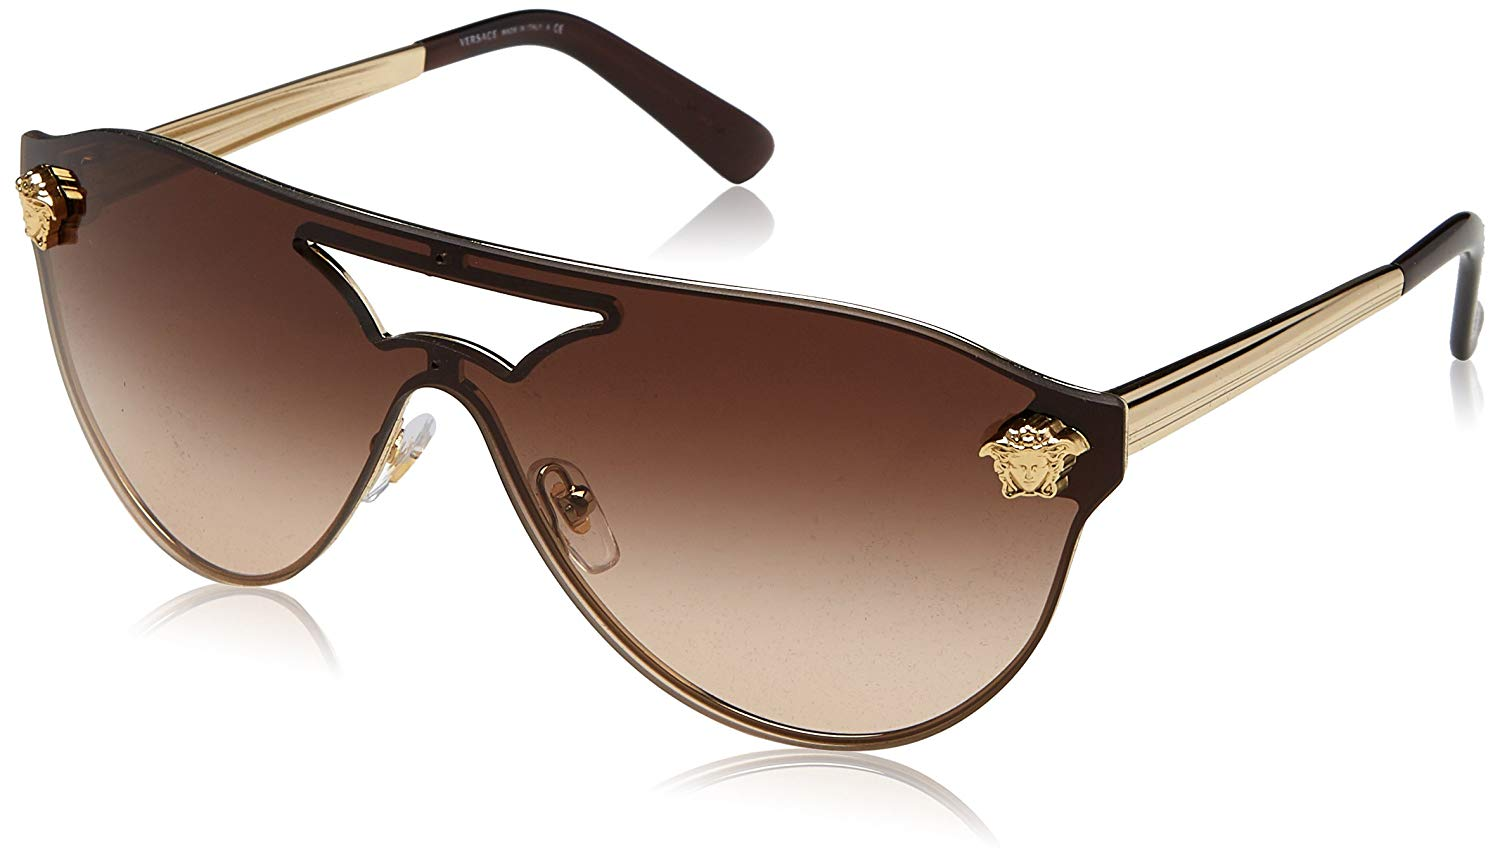 134327139dc76 Get Quotations · Versace Womens Sunglasses (VE2161) Metal